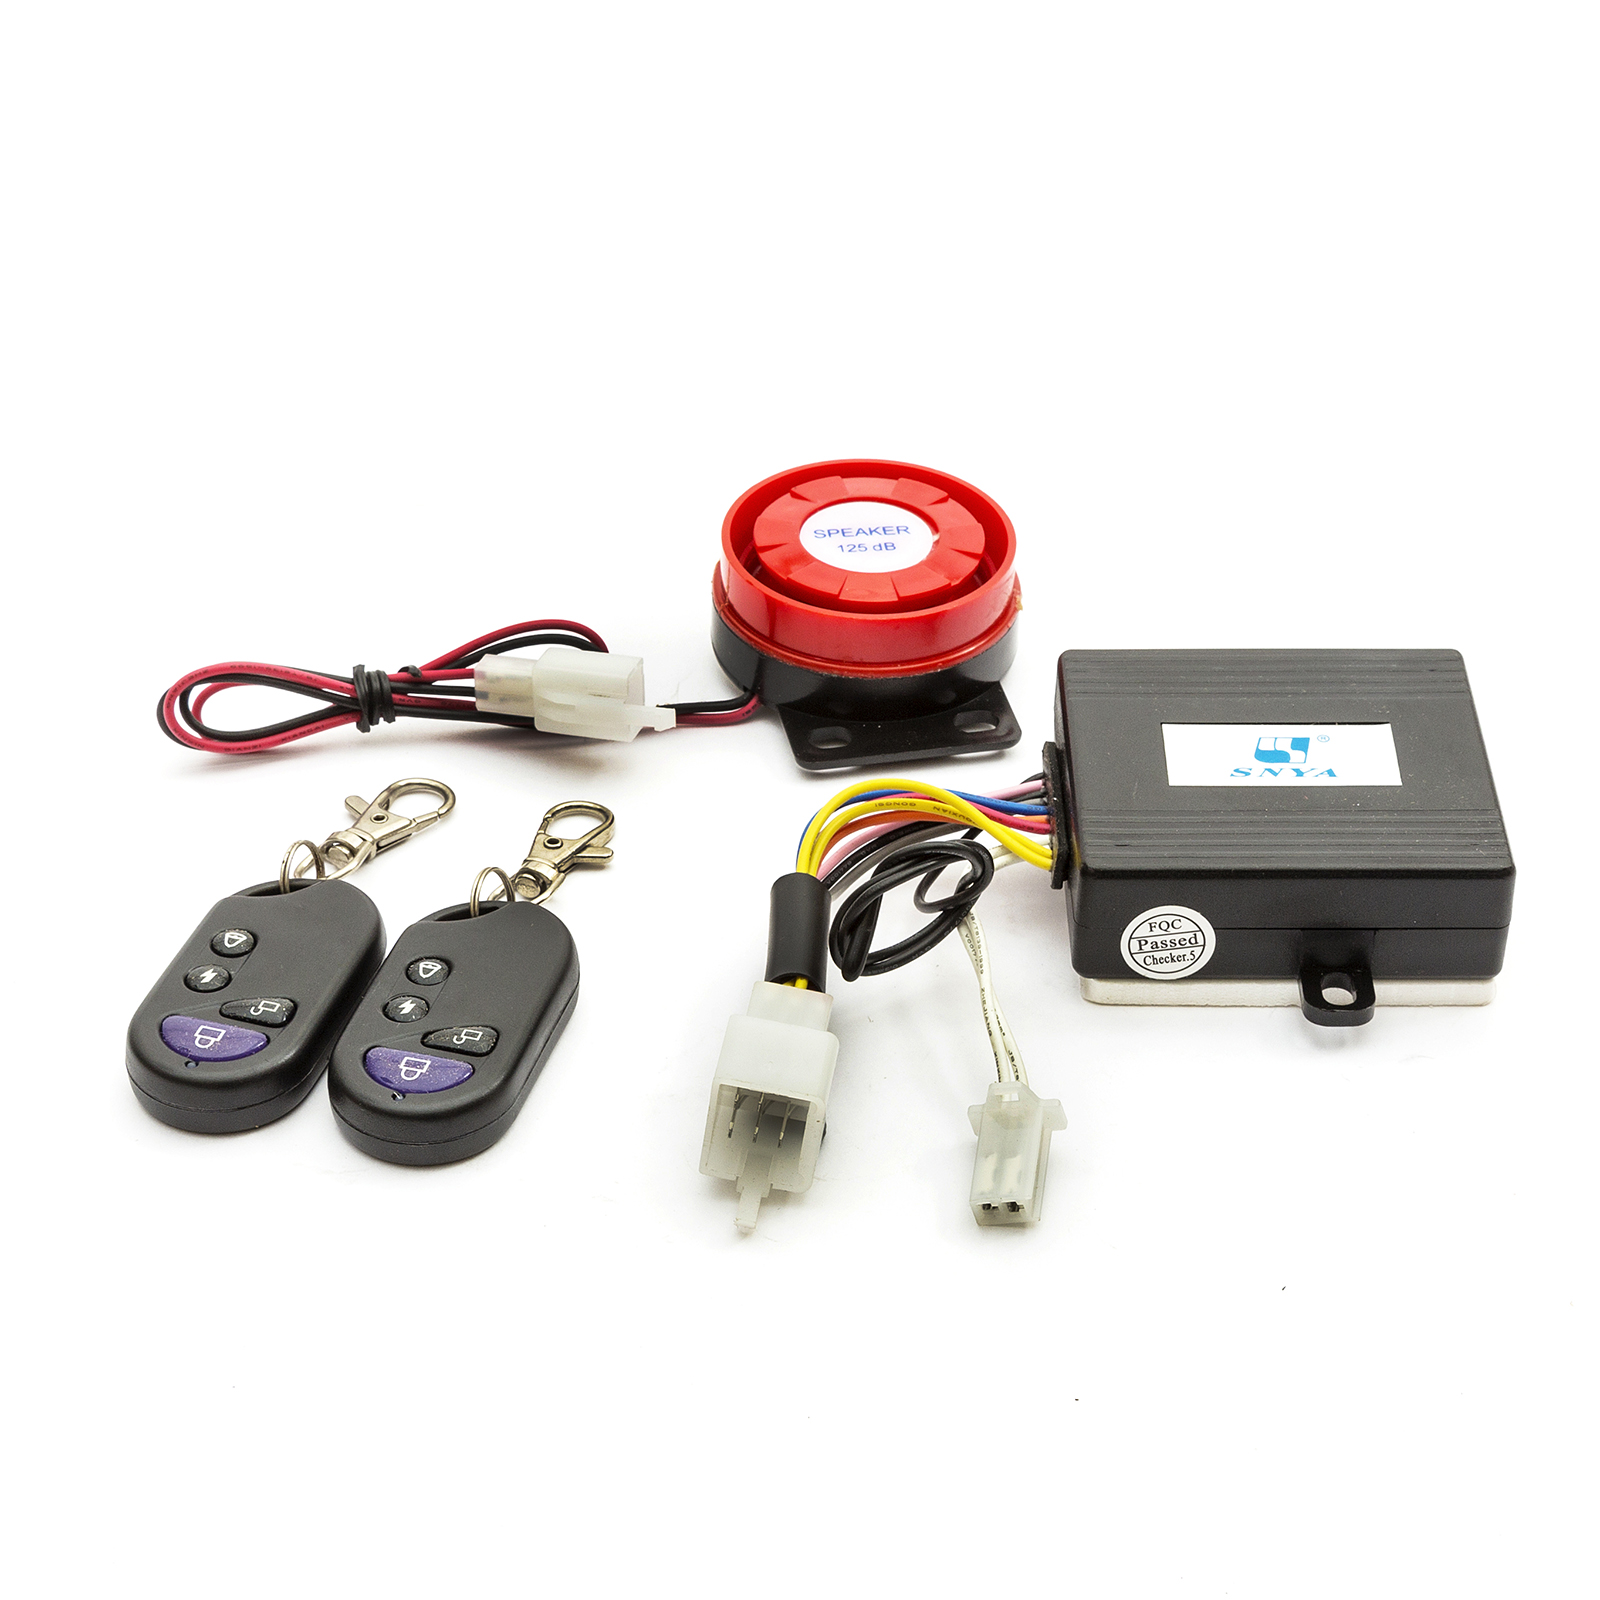 Details about Baotian Scooter Alarm System 50cc 125cc Remote Start & 2 Fobs  Plugs To Loom